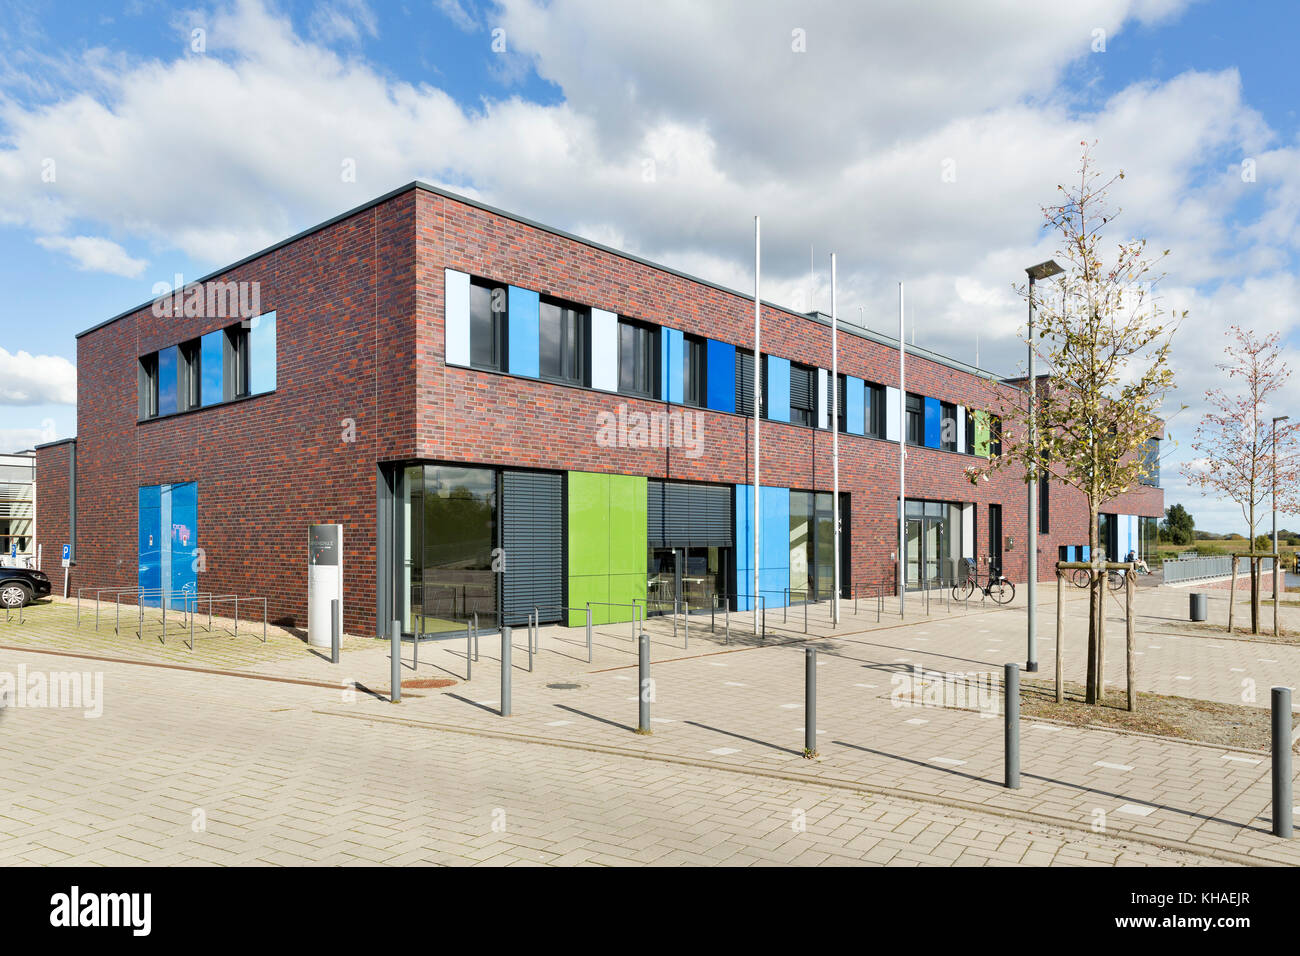 Jade-Hochschule, Campus building of the University of Applied Sciences, Elsfleth, Lower Saxony, Germany - Stock Image